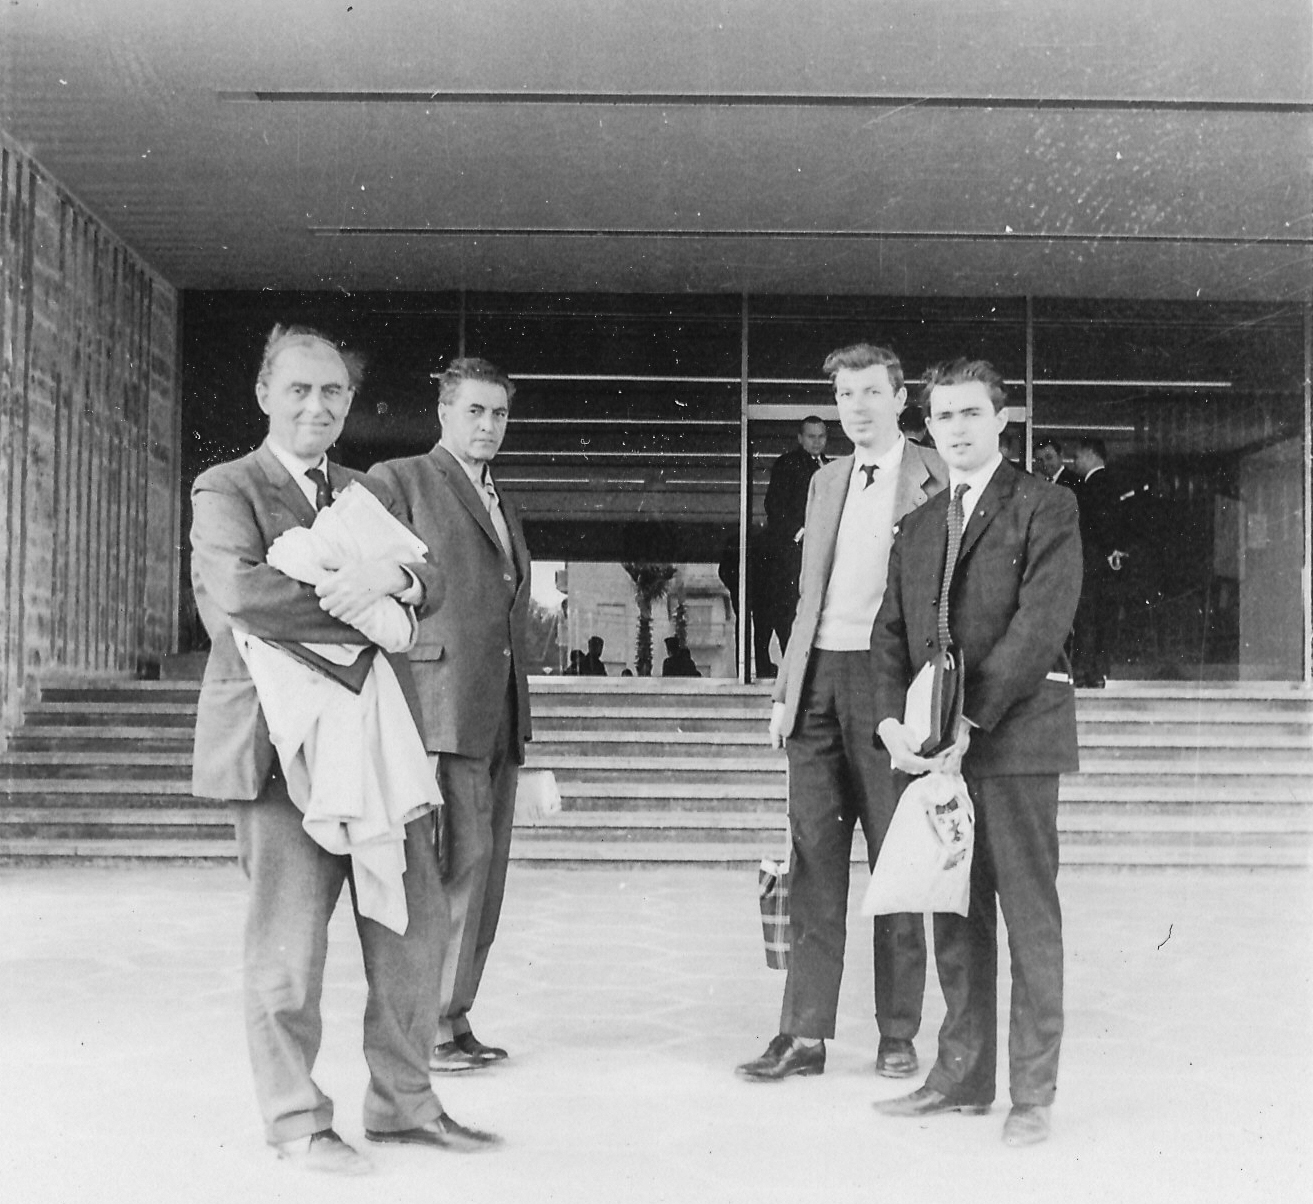 Hugh Alexander, Čeněk Kottnauer, Michael Franklin and Owen Hindle